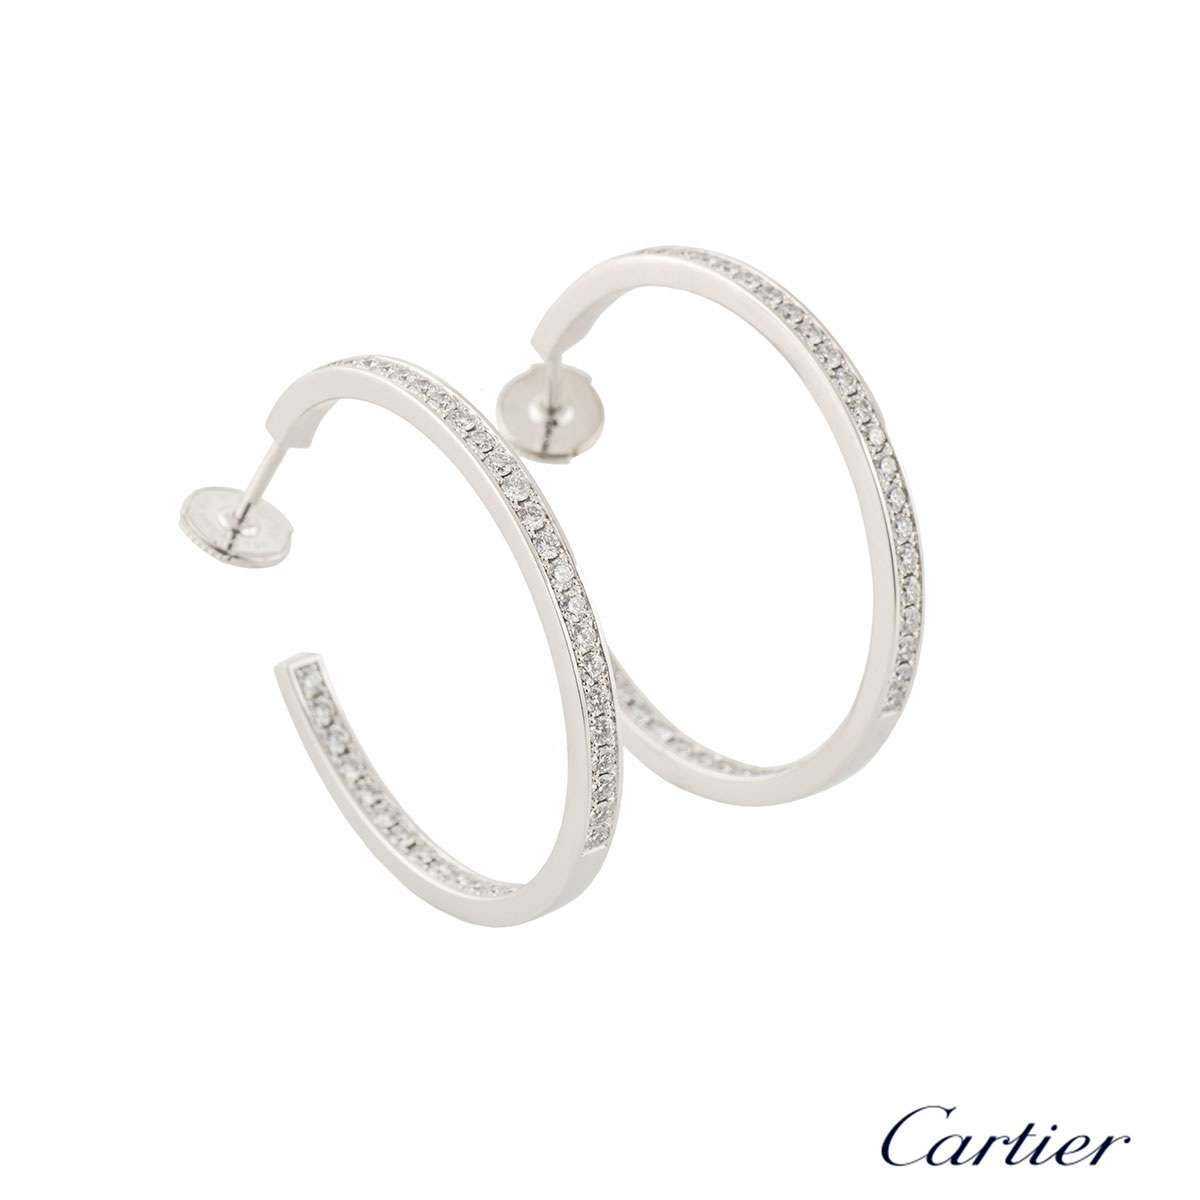 Cartier White Gold Diamond Hoop Earrings